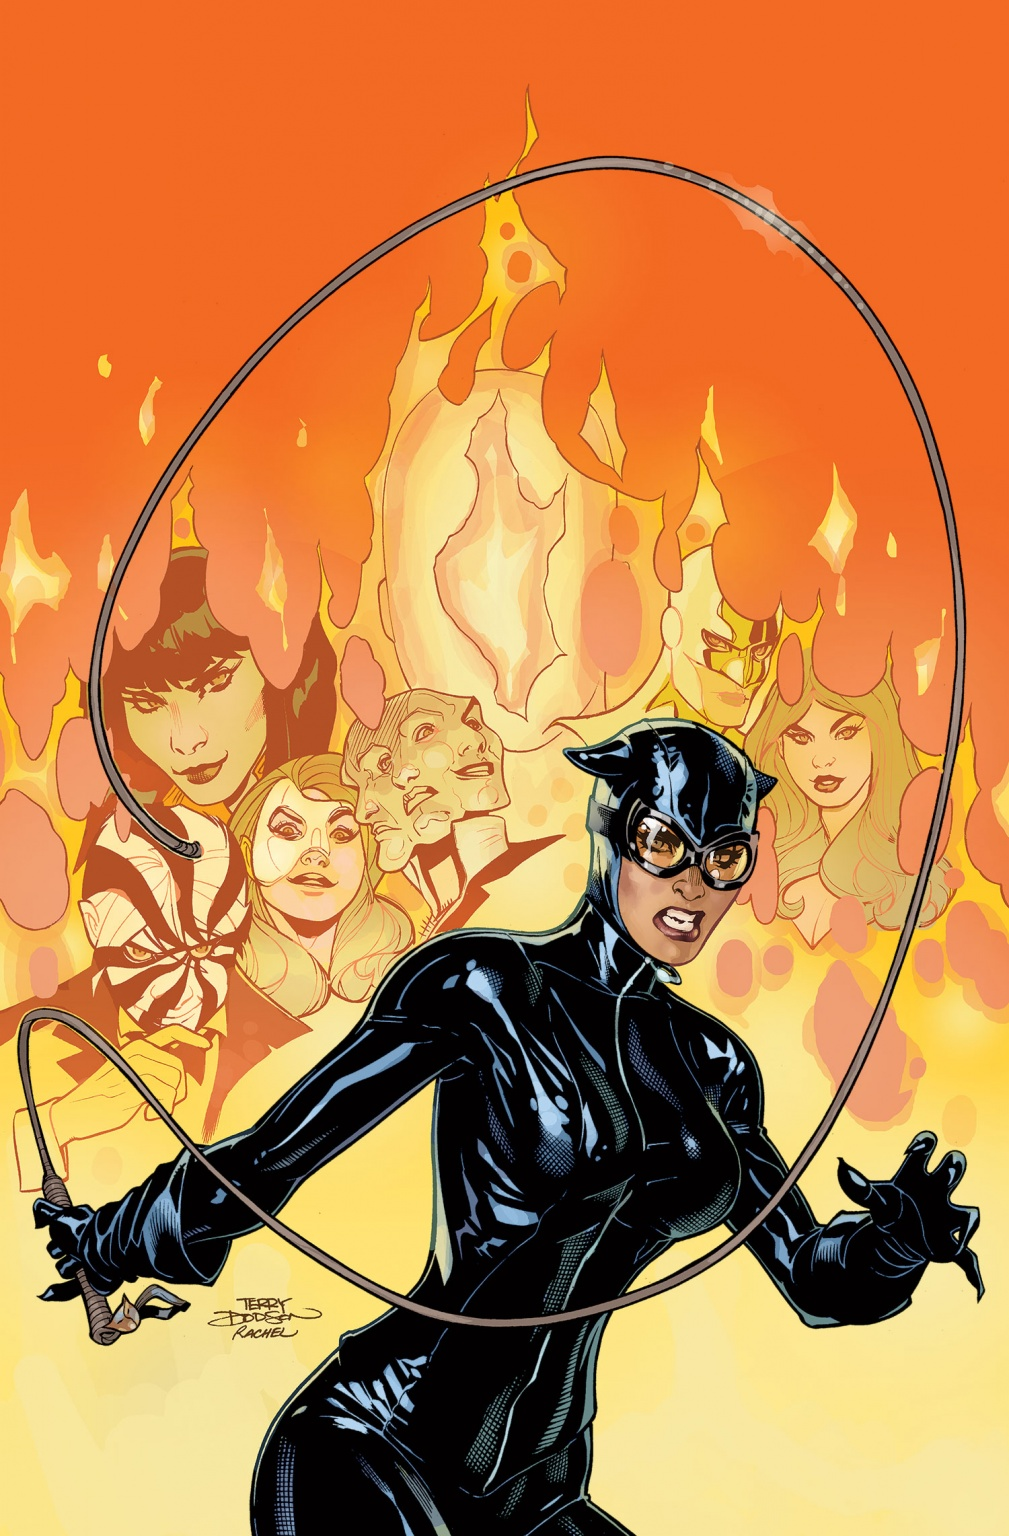 Catwoman Vol. 5: Race of Theives